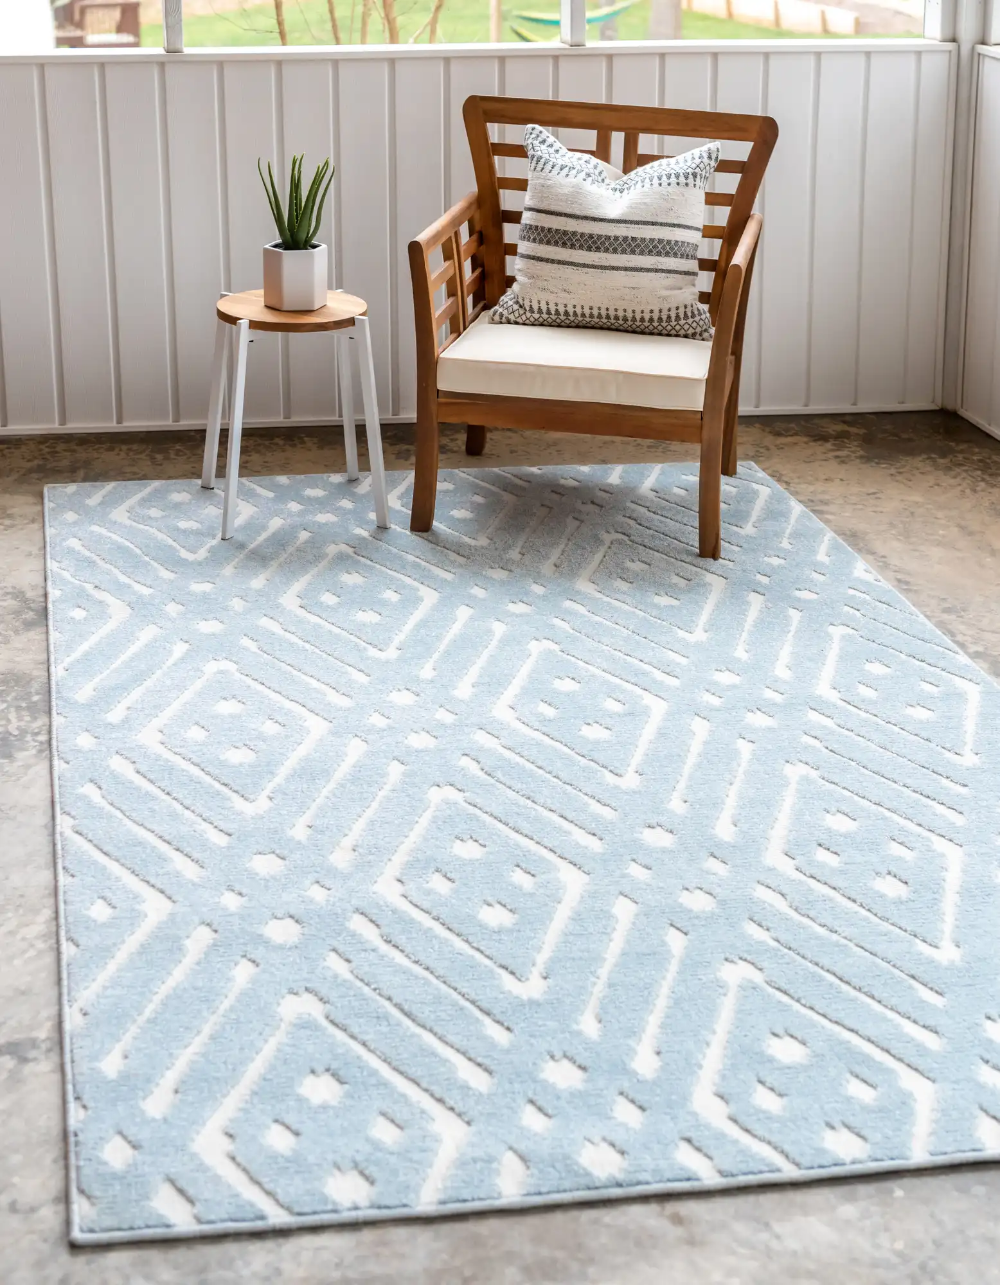 Light Blue 8 X 10 Sabrina Soto Outdoor Rug Esalerugs With